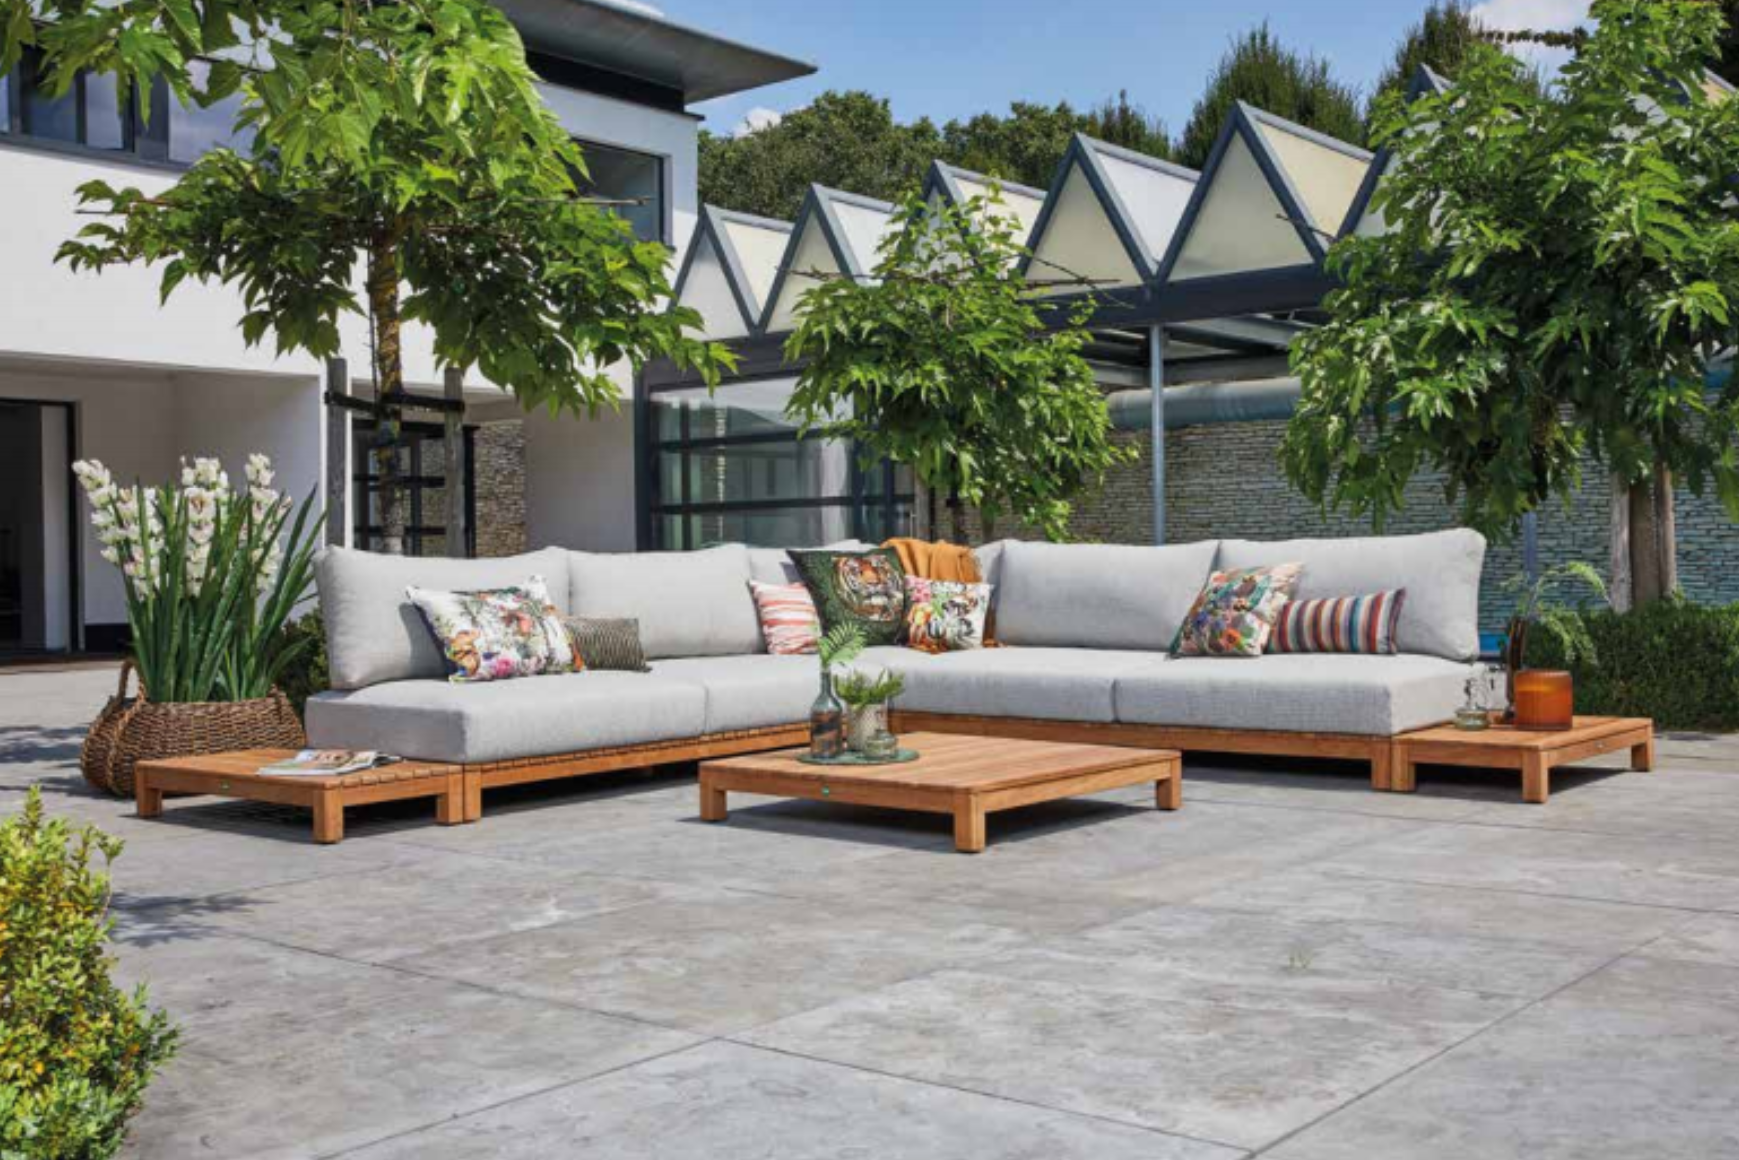 Tuinmeubel trends 2020 plateau loungeset